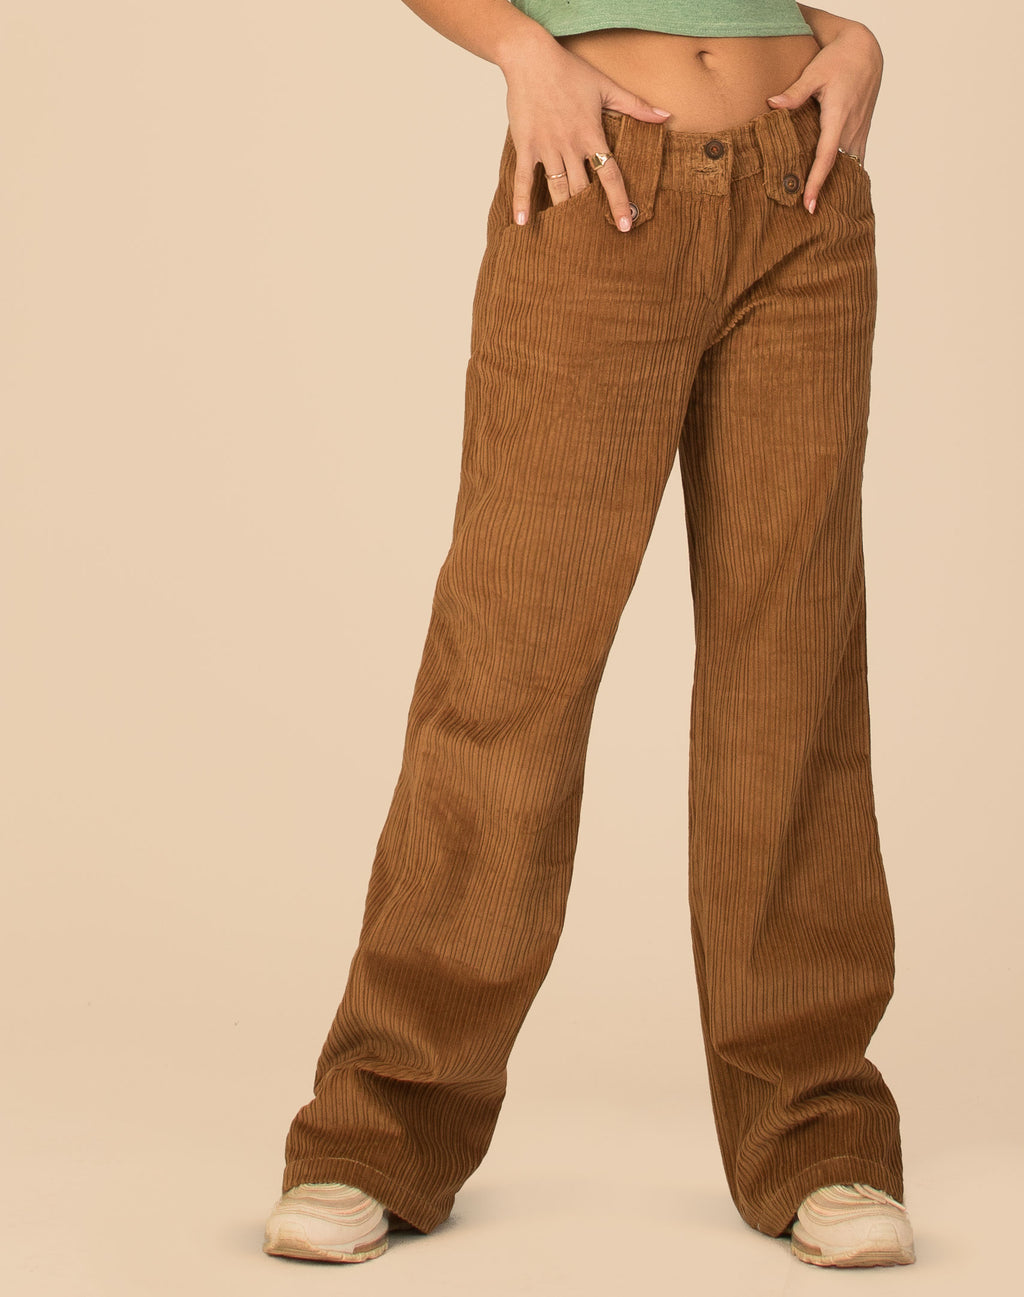 BROWN CORDUROY FLARES